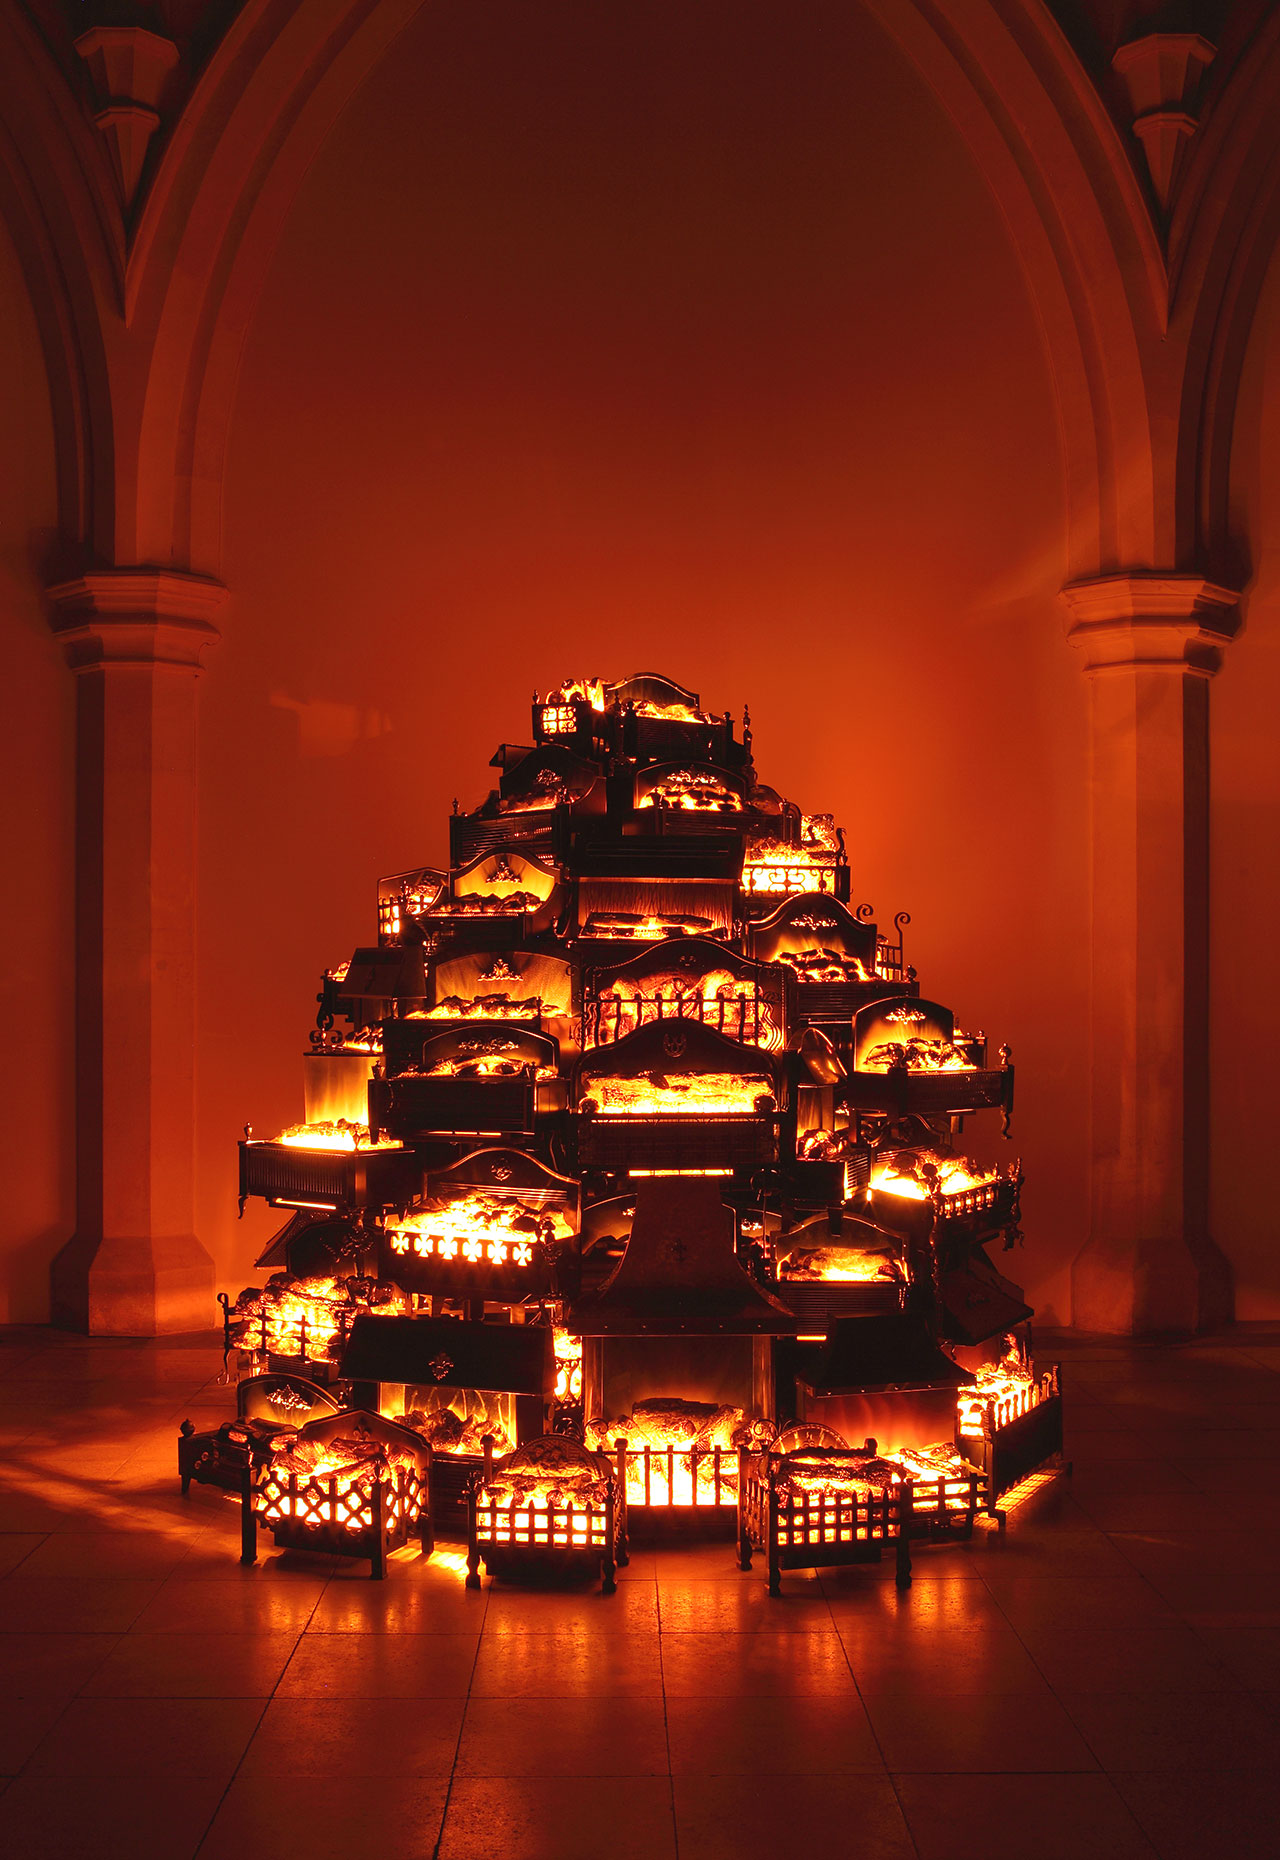 Stuart Haygarth, Pyre, 2006. Kee Klamp steel framework, timber base and 70 vintage electric log effect fires. Created for the exhibition 'Day Dreaming With Stanley Kubrick' held at Somerset House, London. Photo courtesy of the artist.